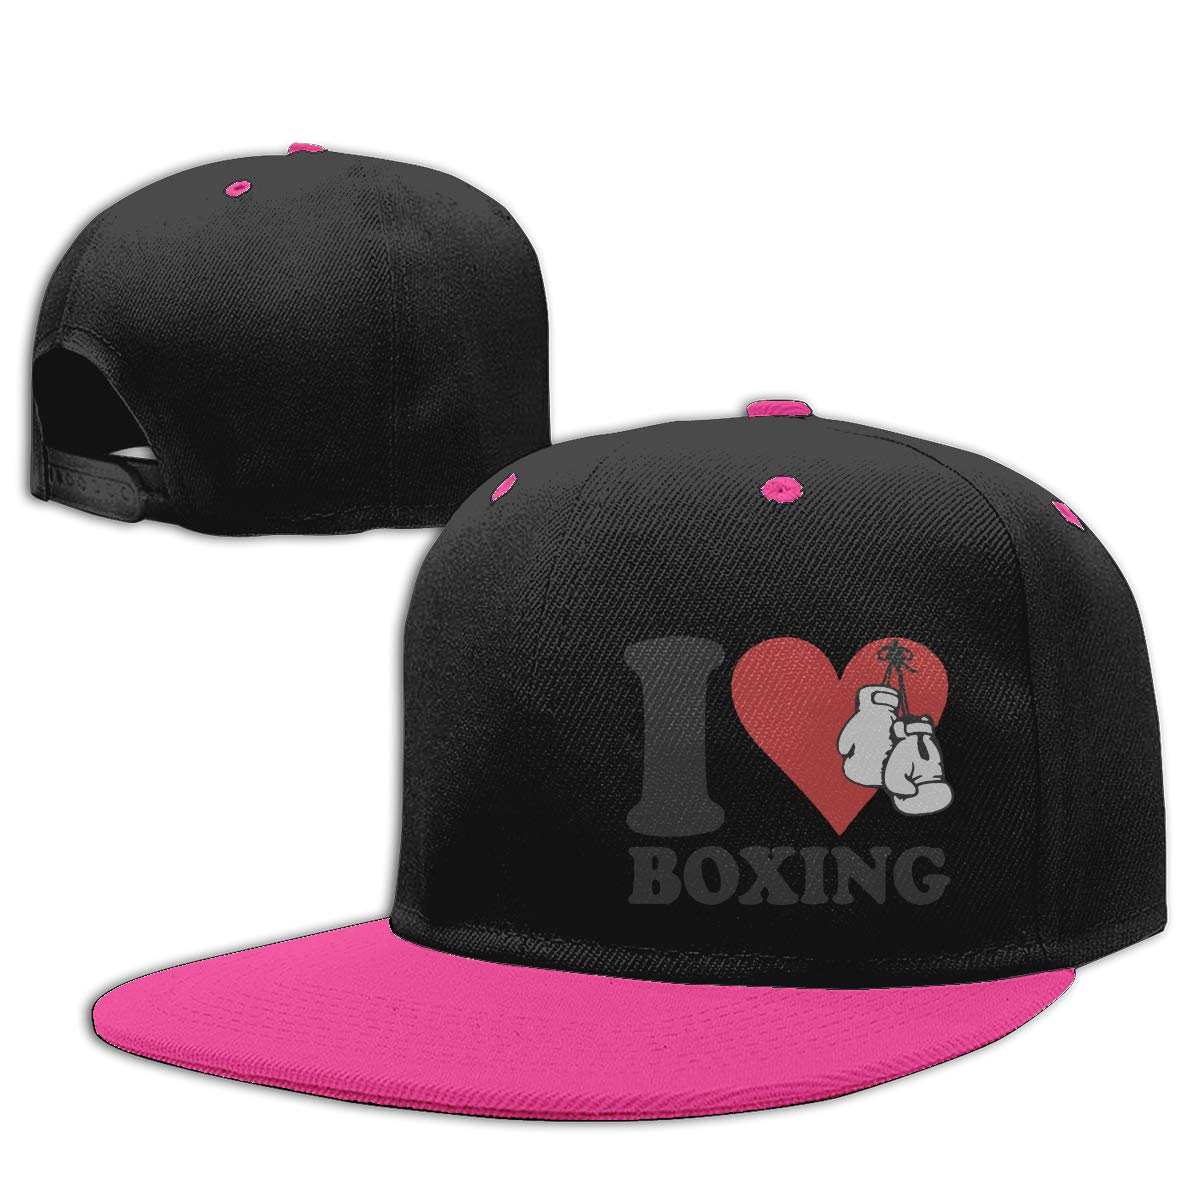 I Love Boxing Trucker Dad-Hat Adjustable Outdoors